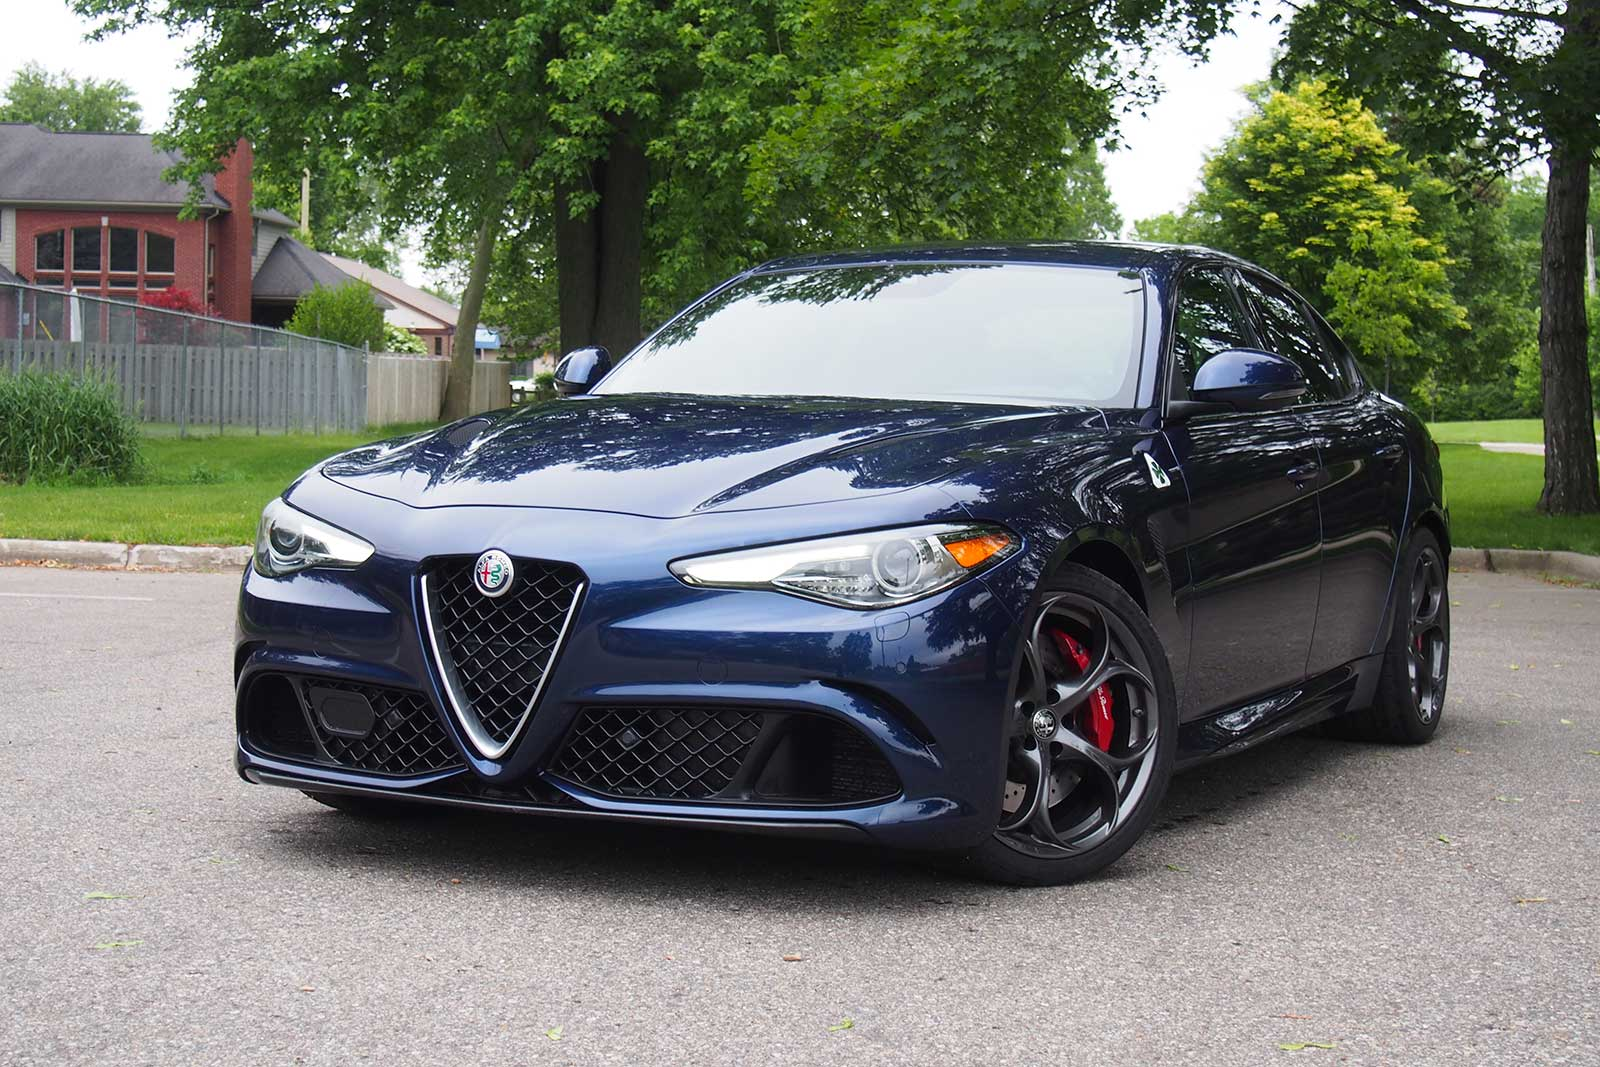 alfa romeo giulietta quadrifoglio verde review with Alfa Romeo Giulia 2017 on Alfa Romeo Giulia Ti Super 85c6f609c94e98c4 as well Alfa romeo giulietta cloverleaf review furthermore Photos likewise Alfa Romeo Giulia 2017 in addition Showthread.